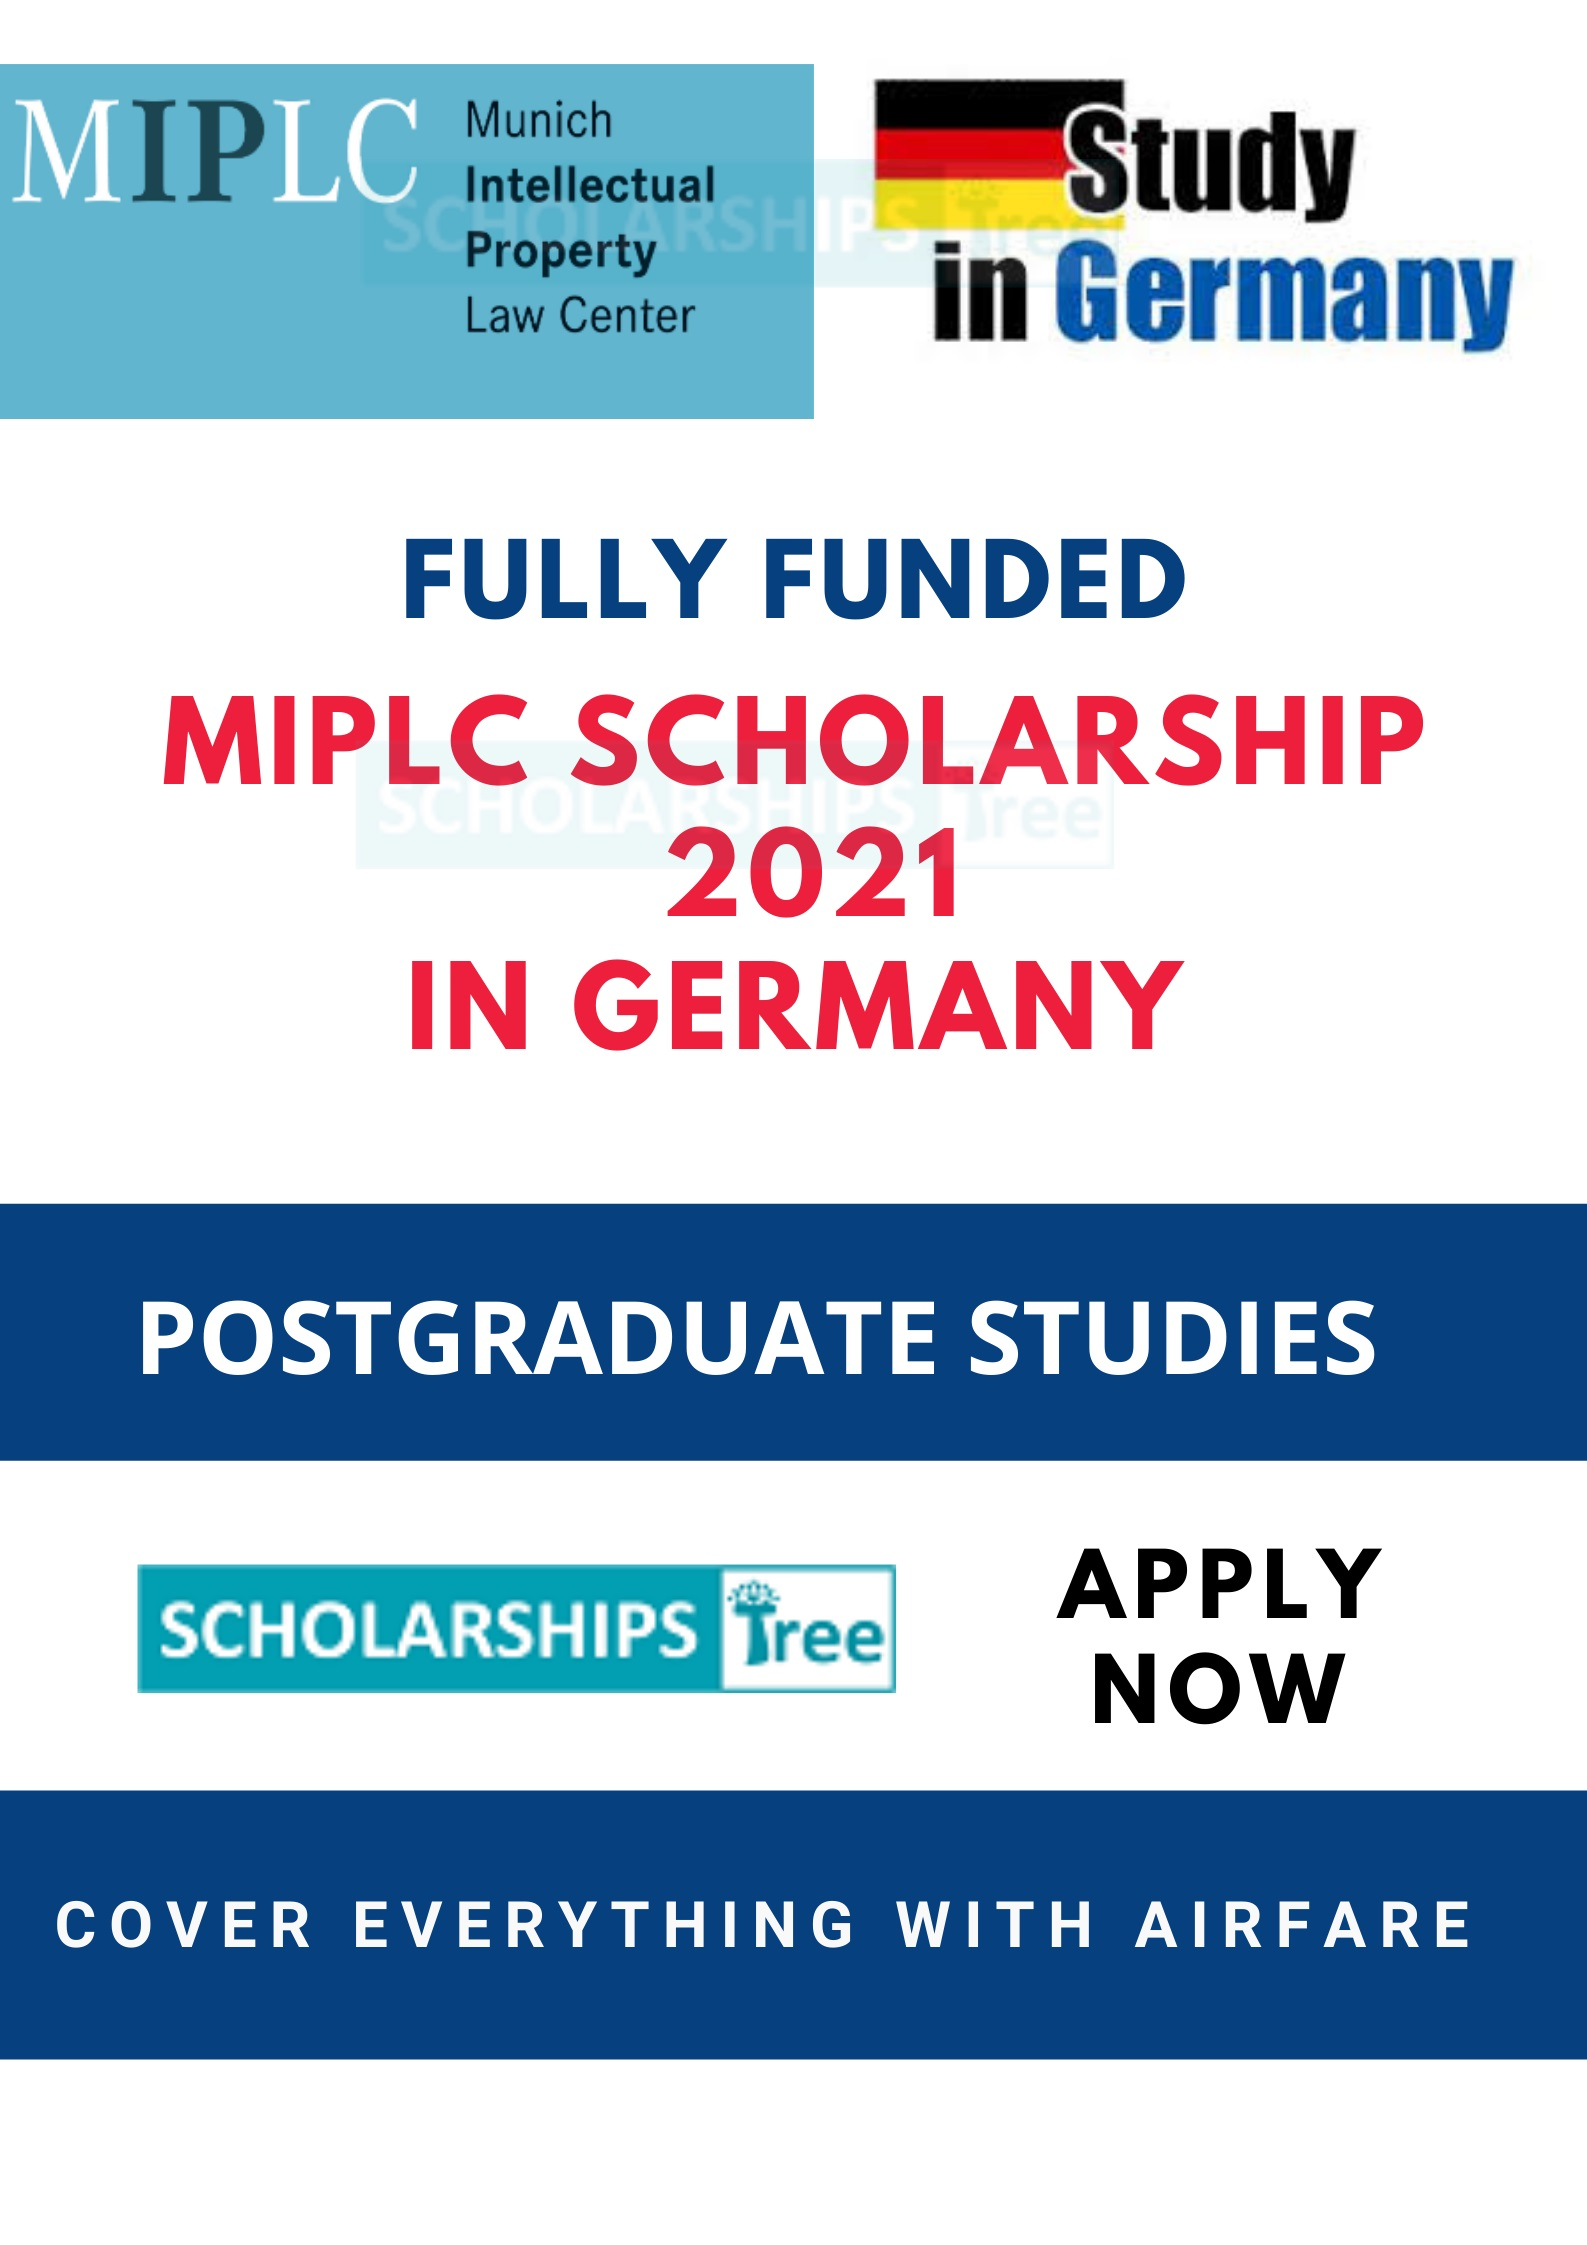 MIPLC Scholarship in Germany 2021-2022 - Fully Funded